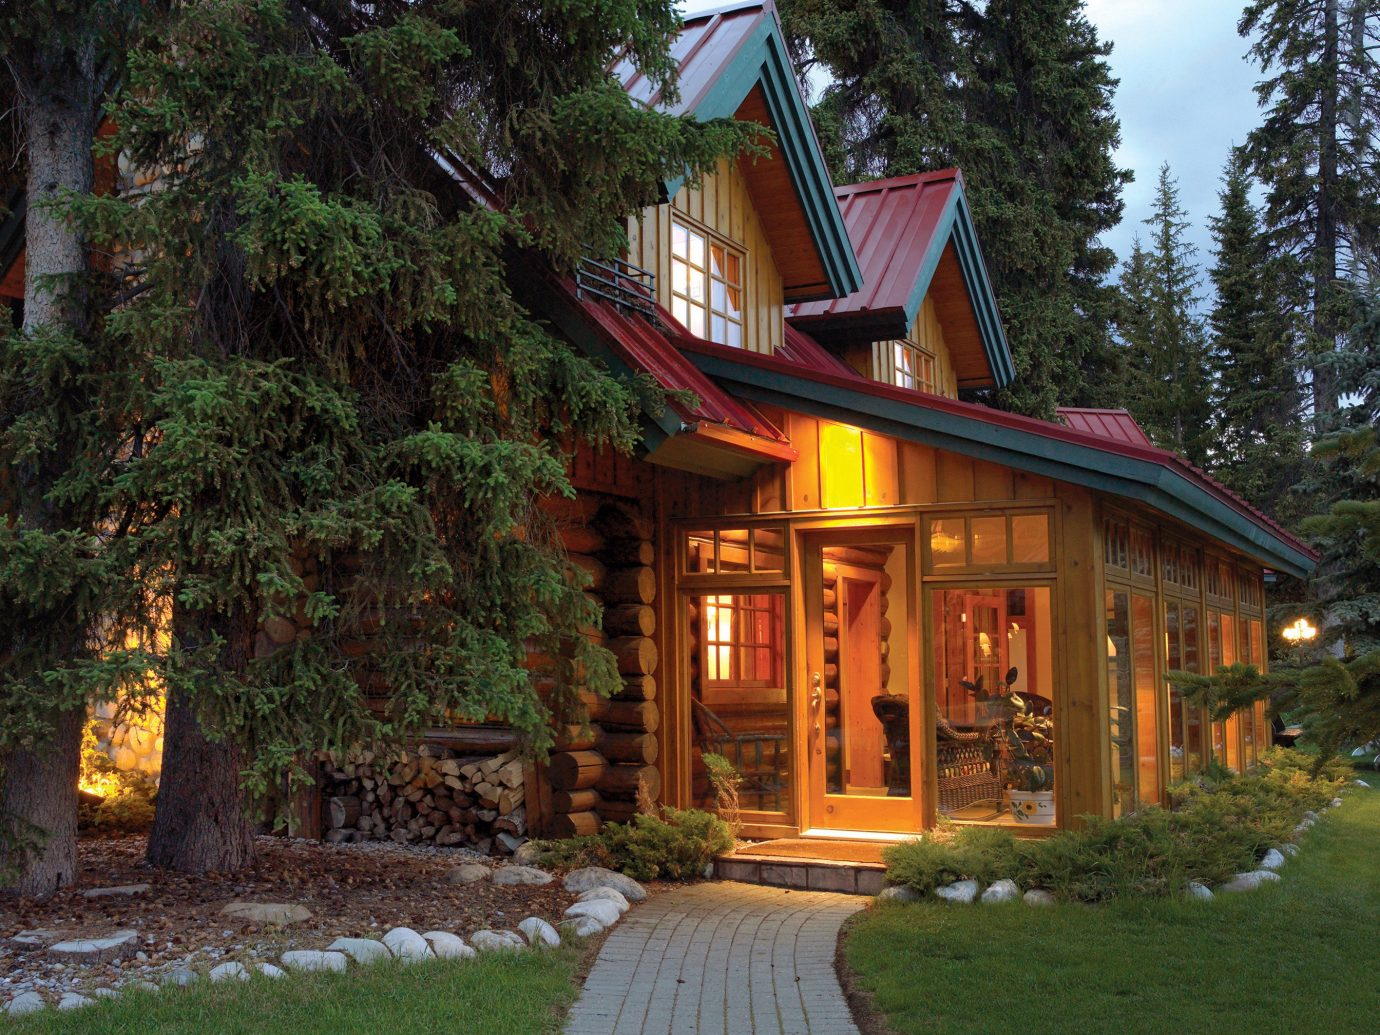 Alberta Architecture Boutique Hotels Canada Exterior Hotels Nature Rustic Scenic views home house cottage log cabin tree plant real estate lighting estate landscape outdoor structure facade evening building siding landscaping